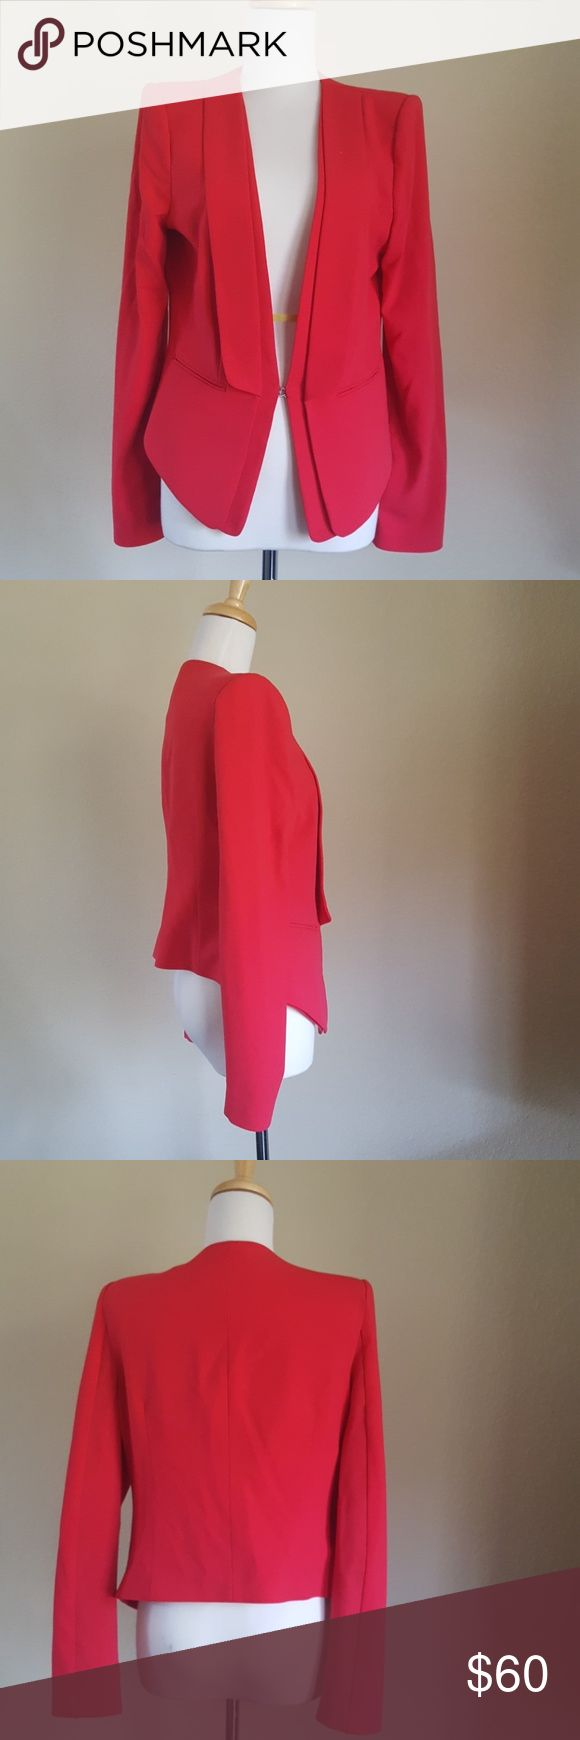 """BCBG MAX AZRIA """"Alex"""" Red Blazer Jacket LOVE this jacket! Minimal wear, maybe 3 times, so no stains or signs of wear, like new. Hook and eye closure, pocket details (do not open), layered lapel. Size M. The red has a pink or blue undertone to it - NOT an orangey red. BCBGMaxAzria Jackets & Coats Blazers"""